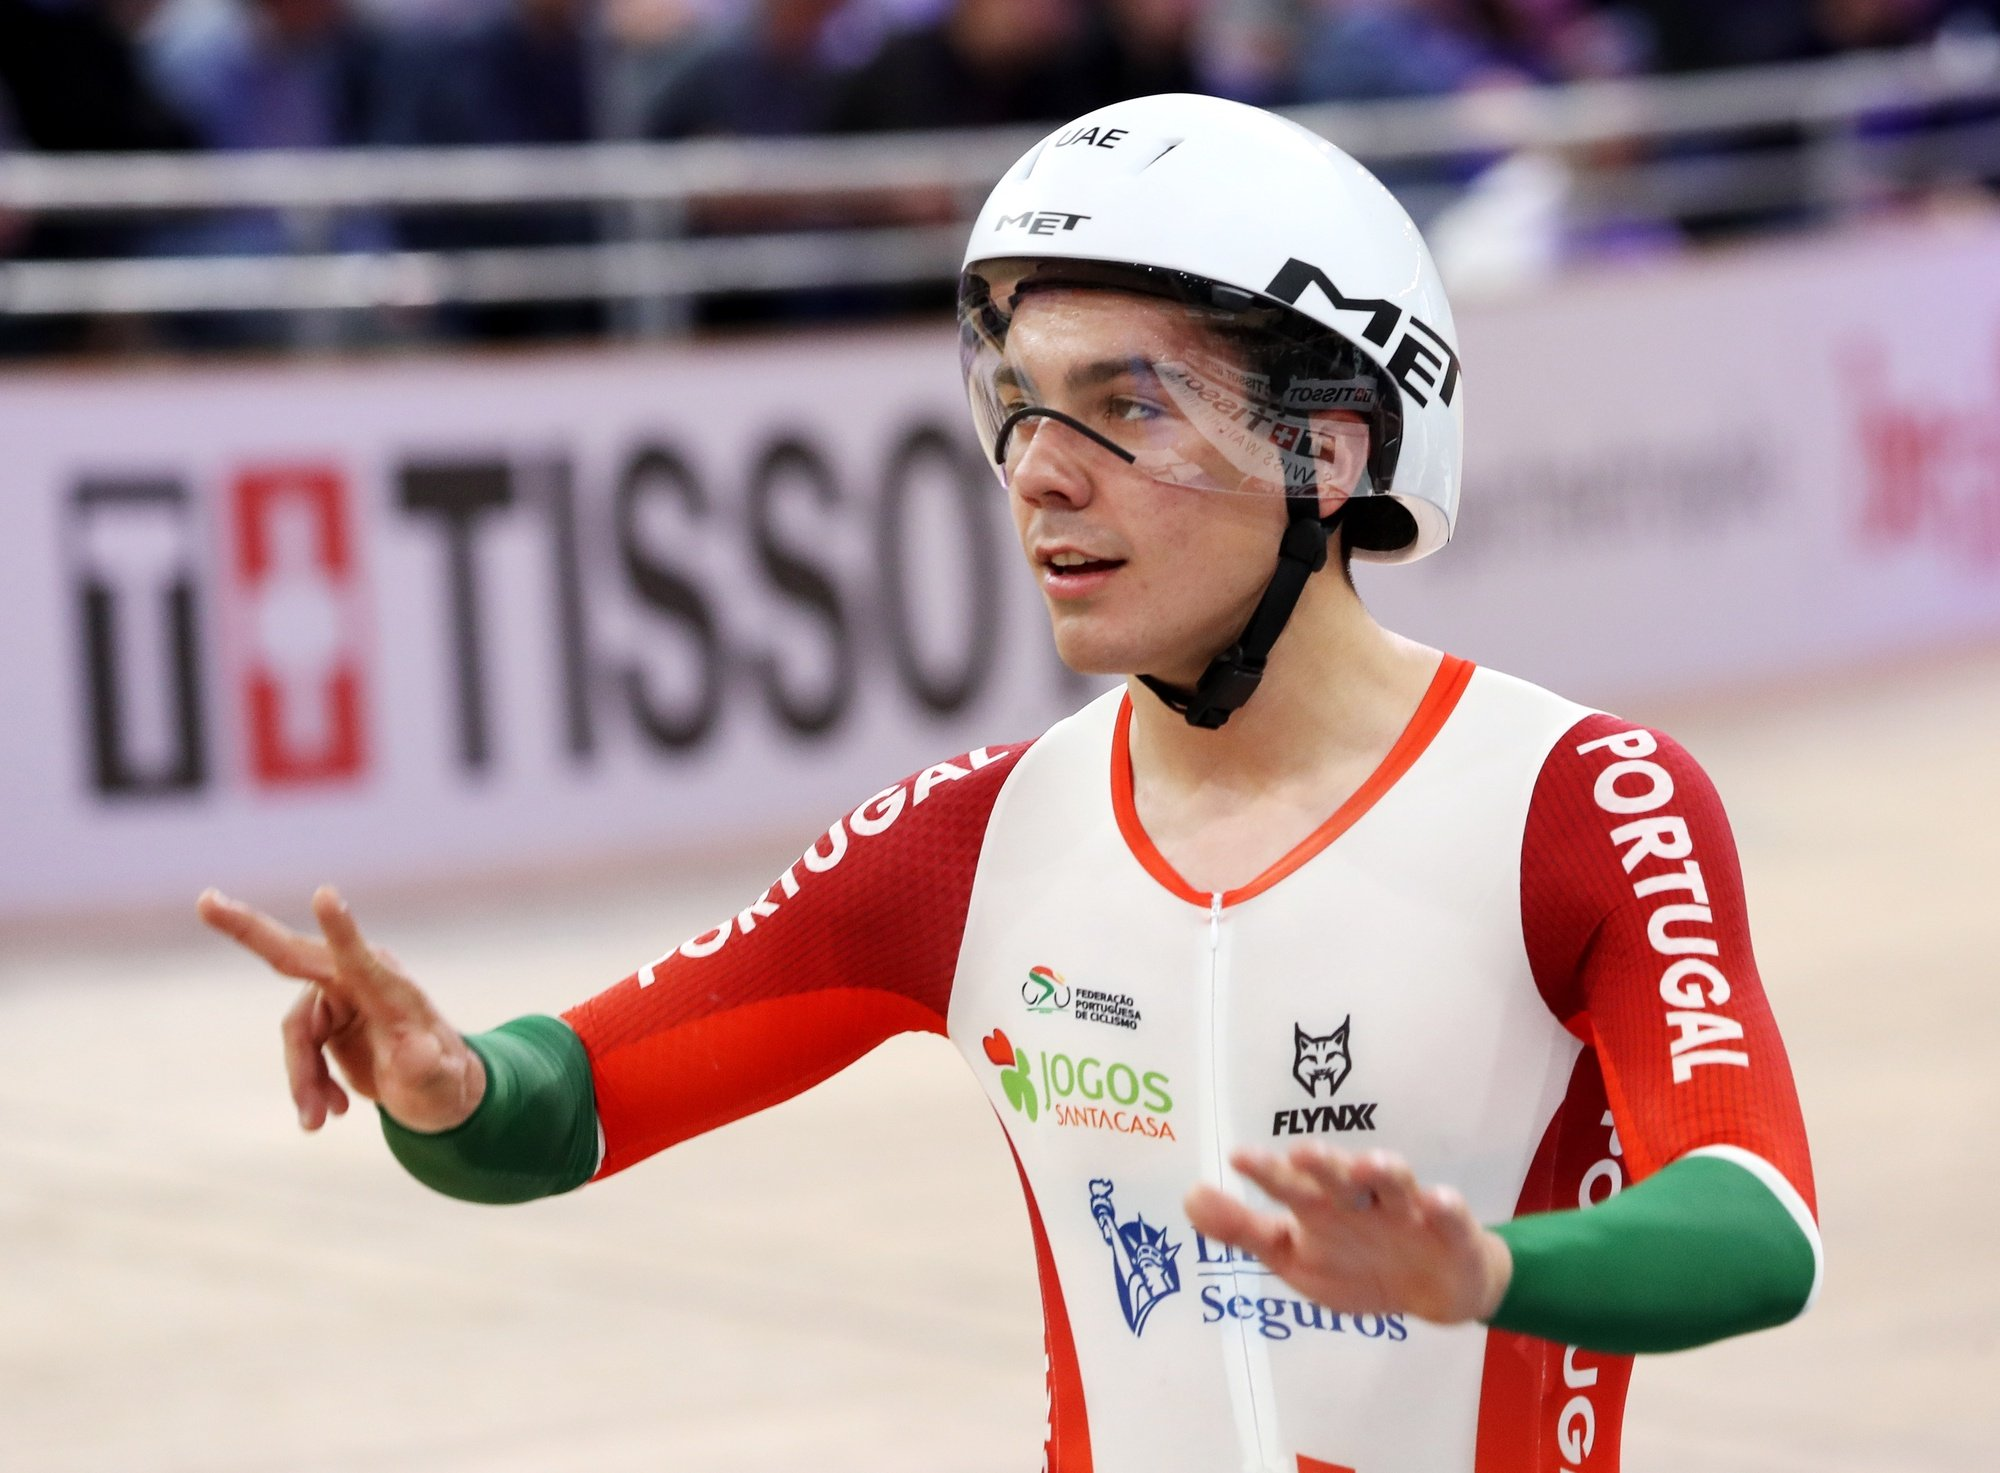 epa08253438 Iuri Leitao of Portugal gestures after the Men's Scratch Race at the UCI Track Cycling World Championships in Berlin, Germany, 27 February 2020.  EPA/FOCKE STRANGMANN